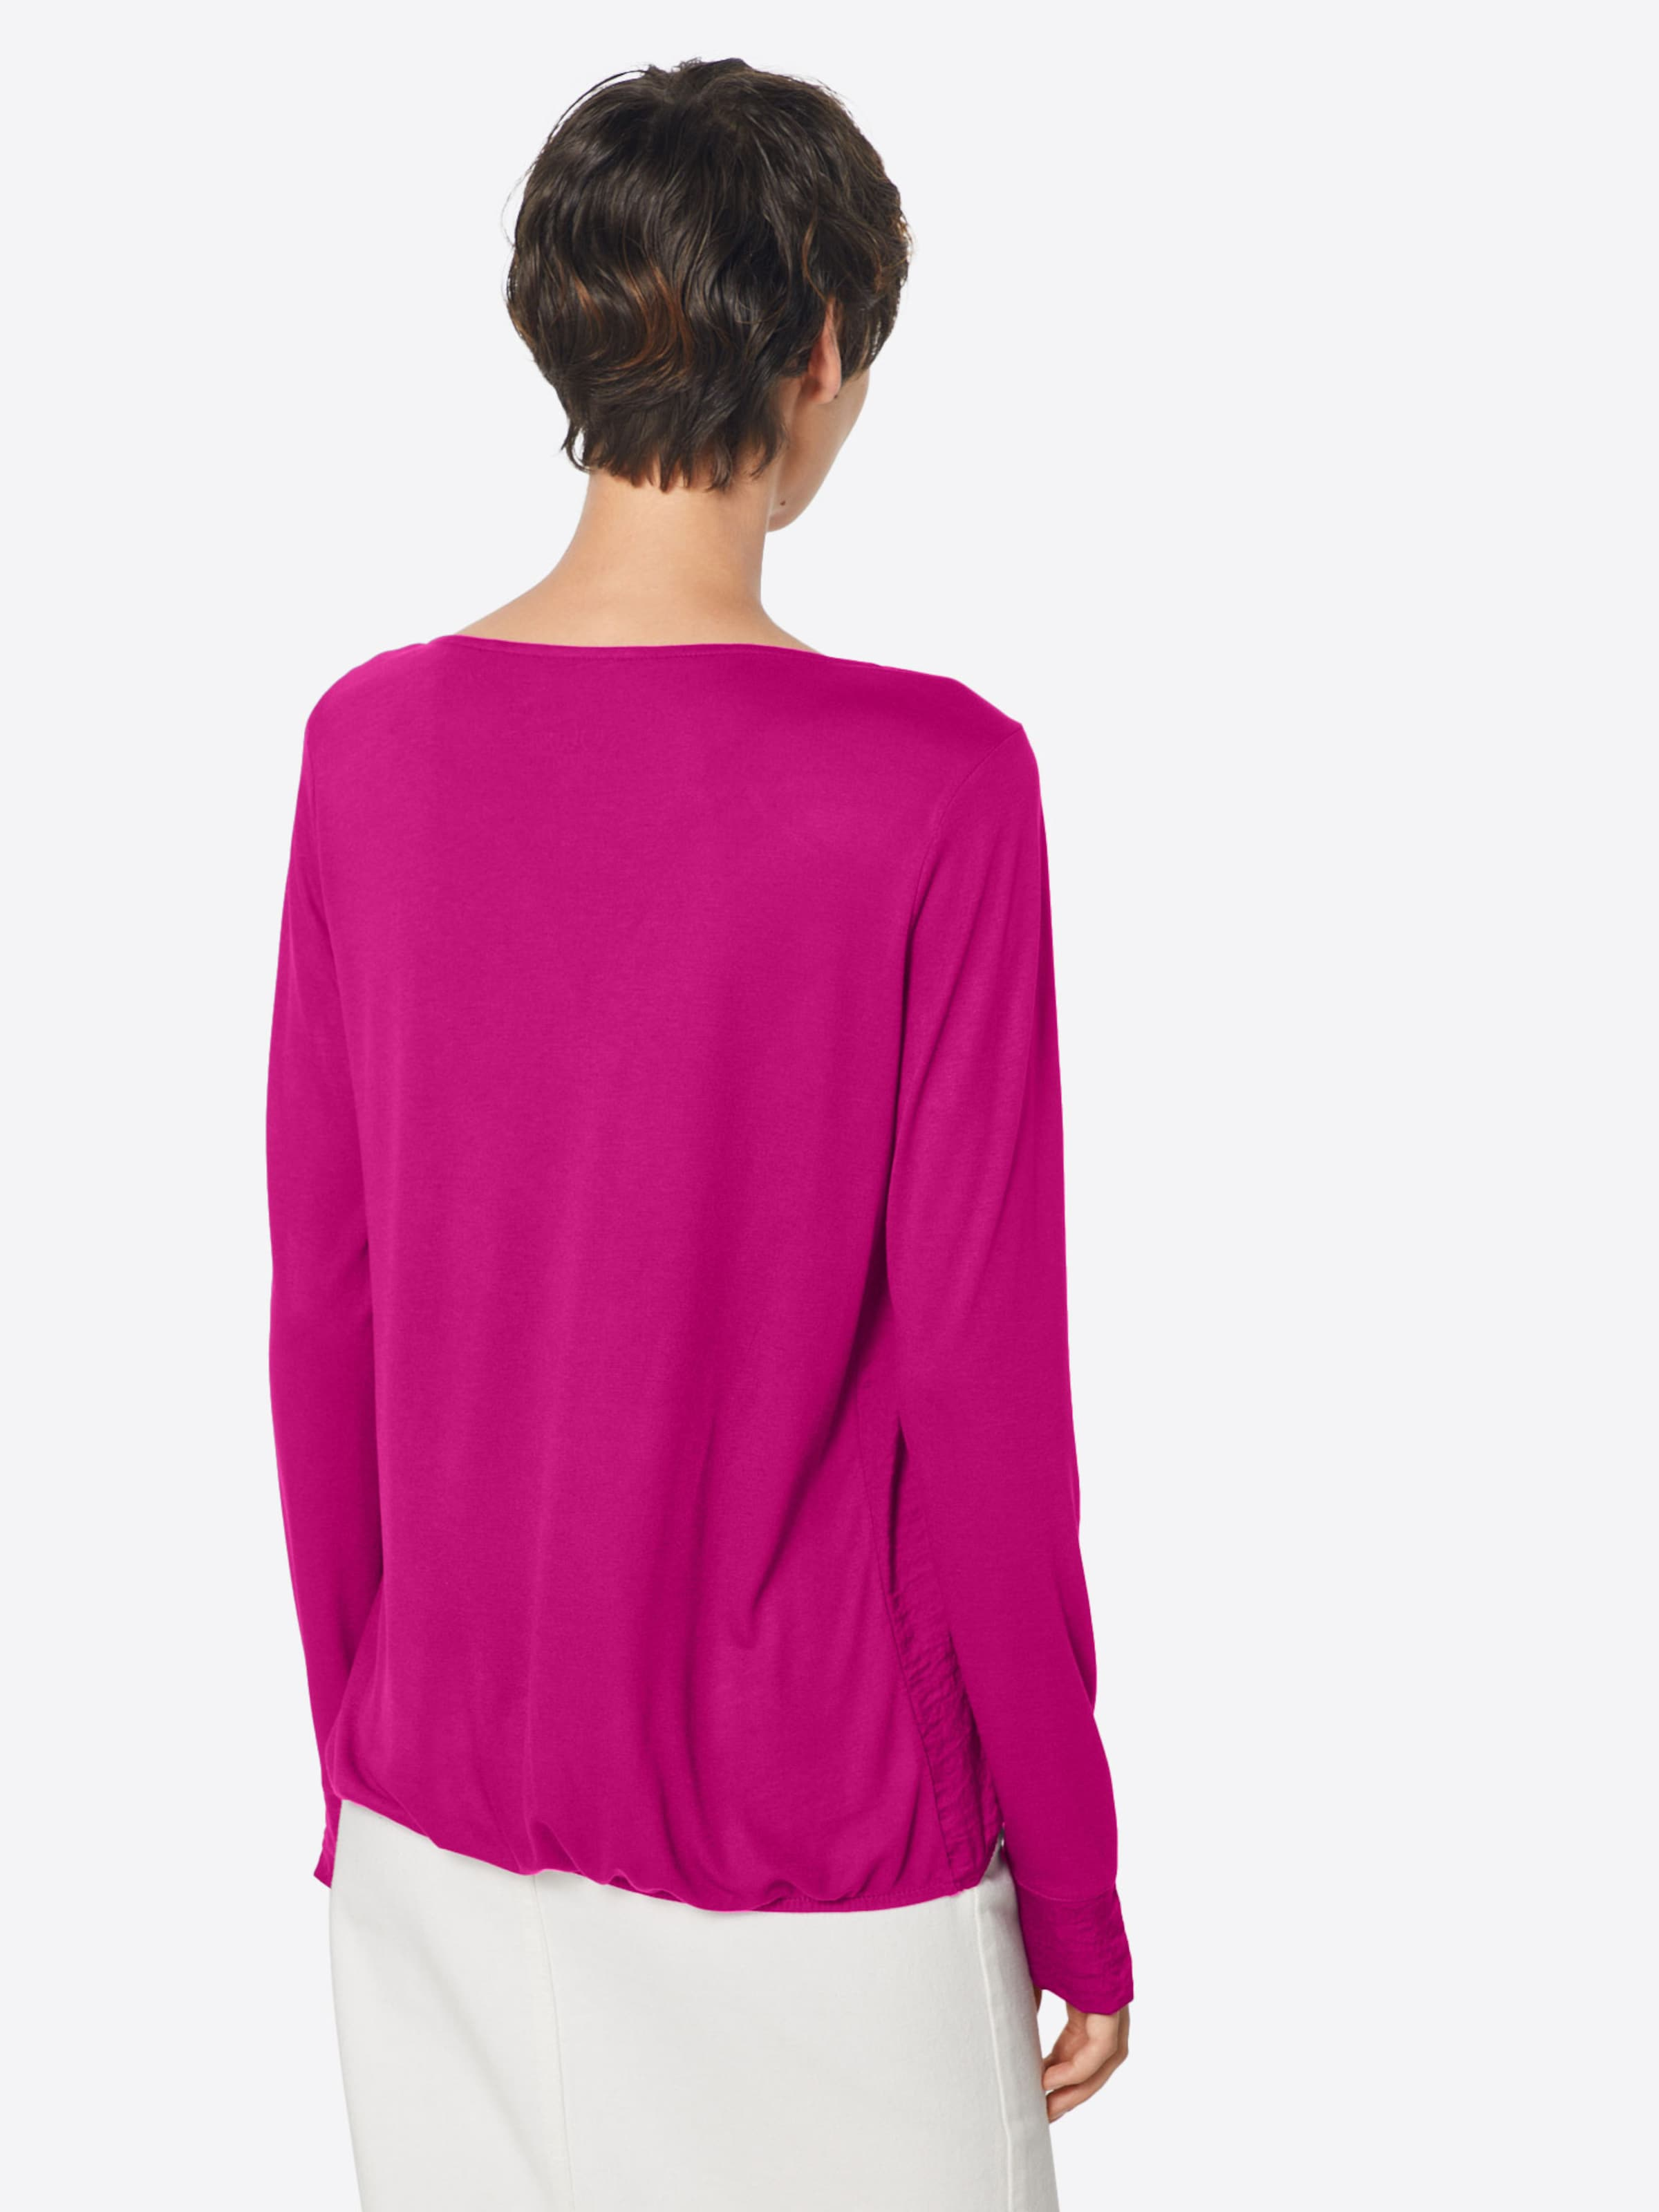 Shirt Eosin Red S In oliver Label D9WHYE2I